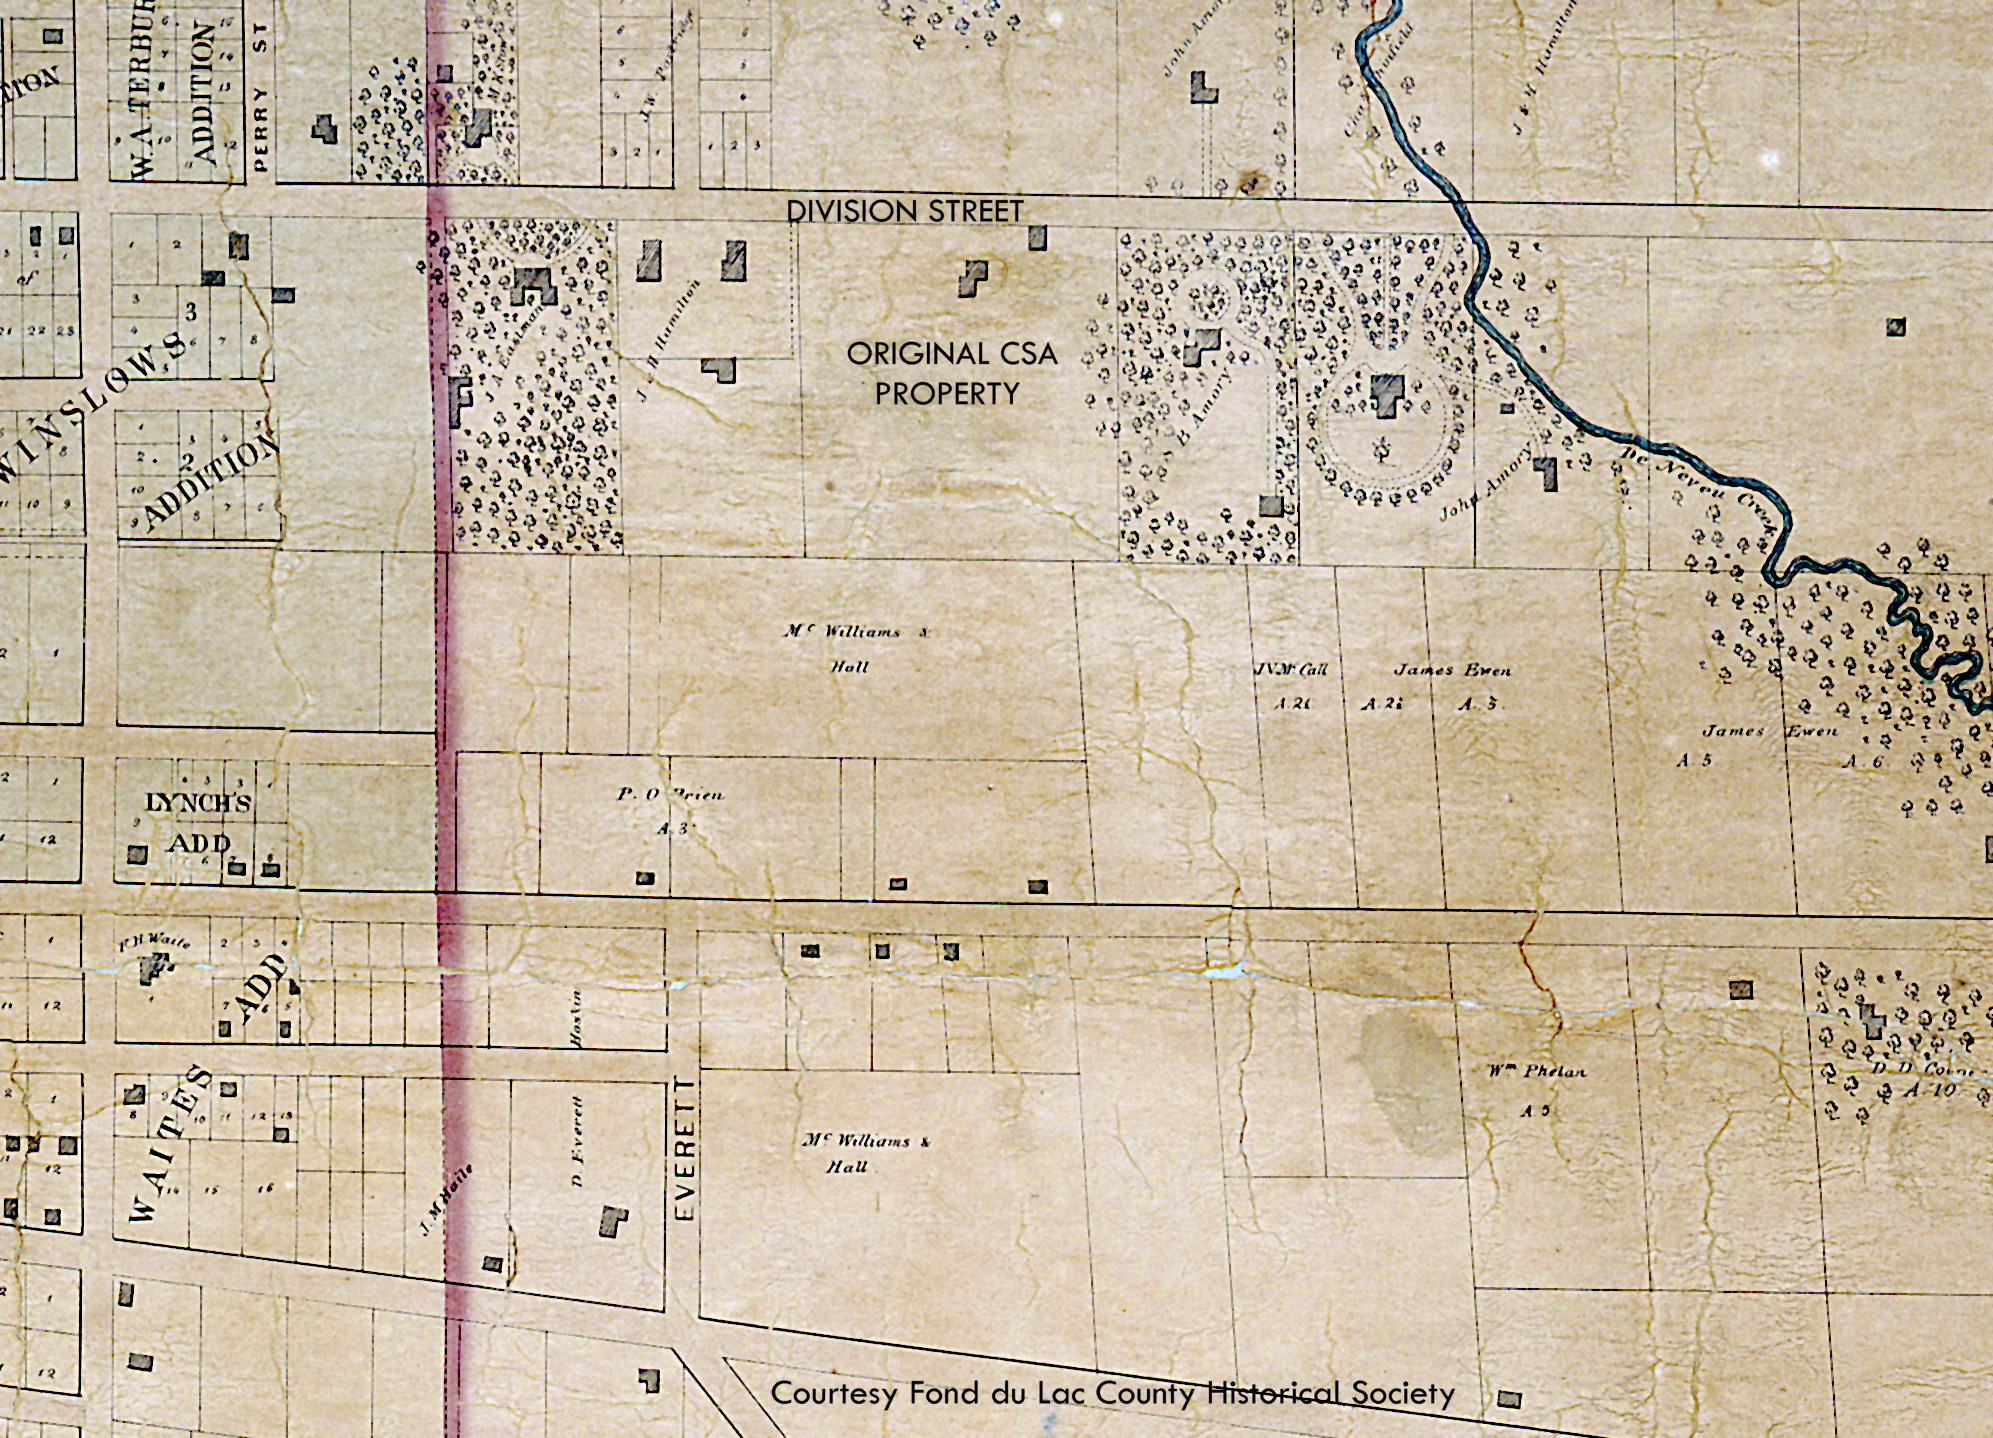 Plat map from 1857 showing parcel of land the Sisters of St. Agnes would purchase 13 years later.